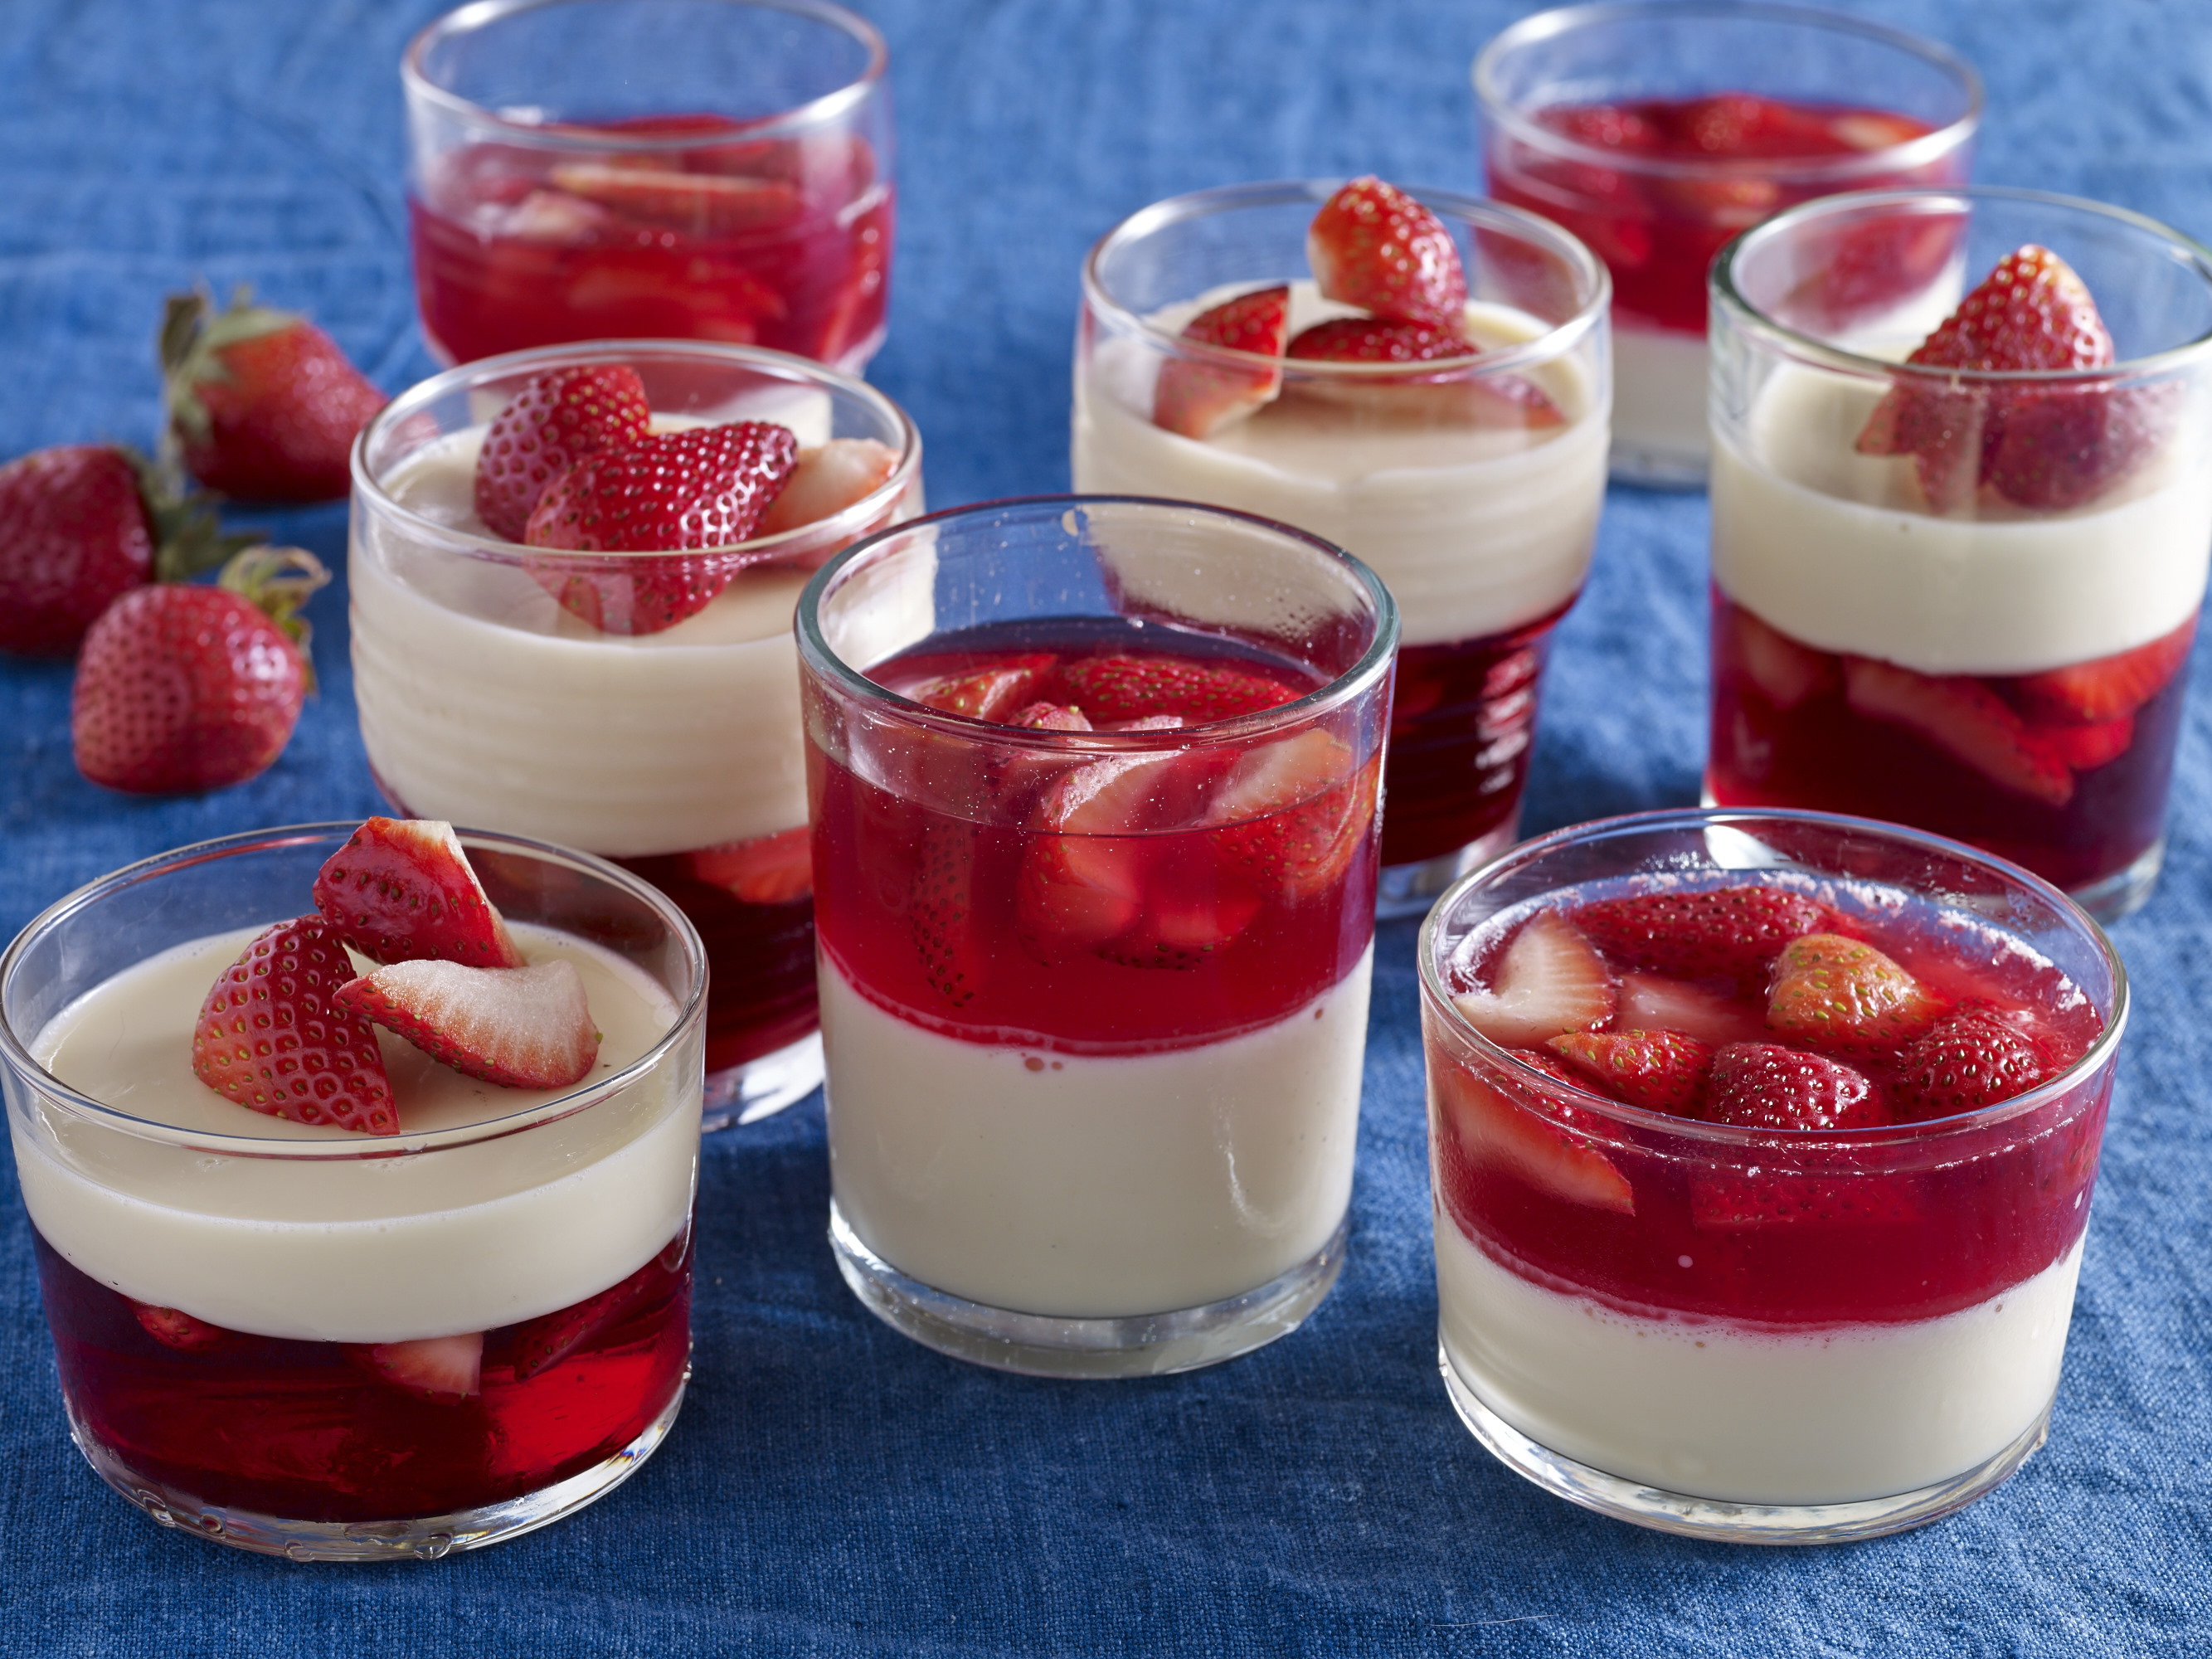 tres leches and strawberry gelatin